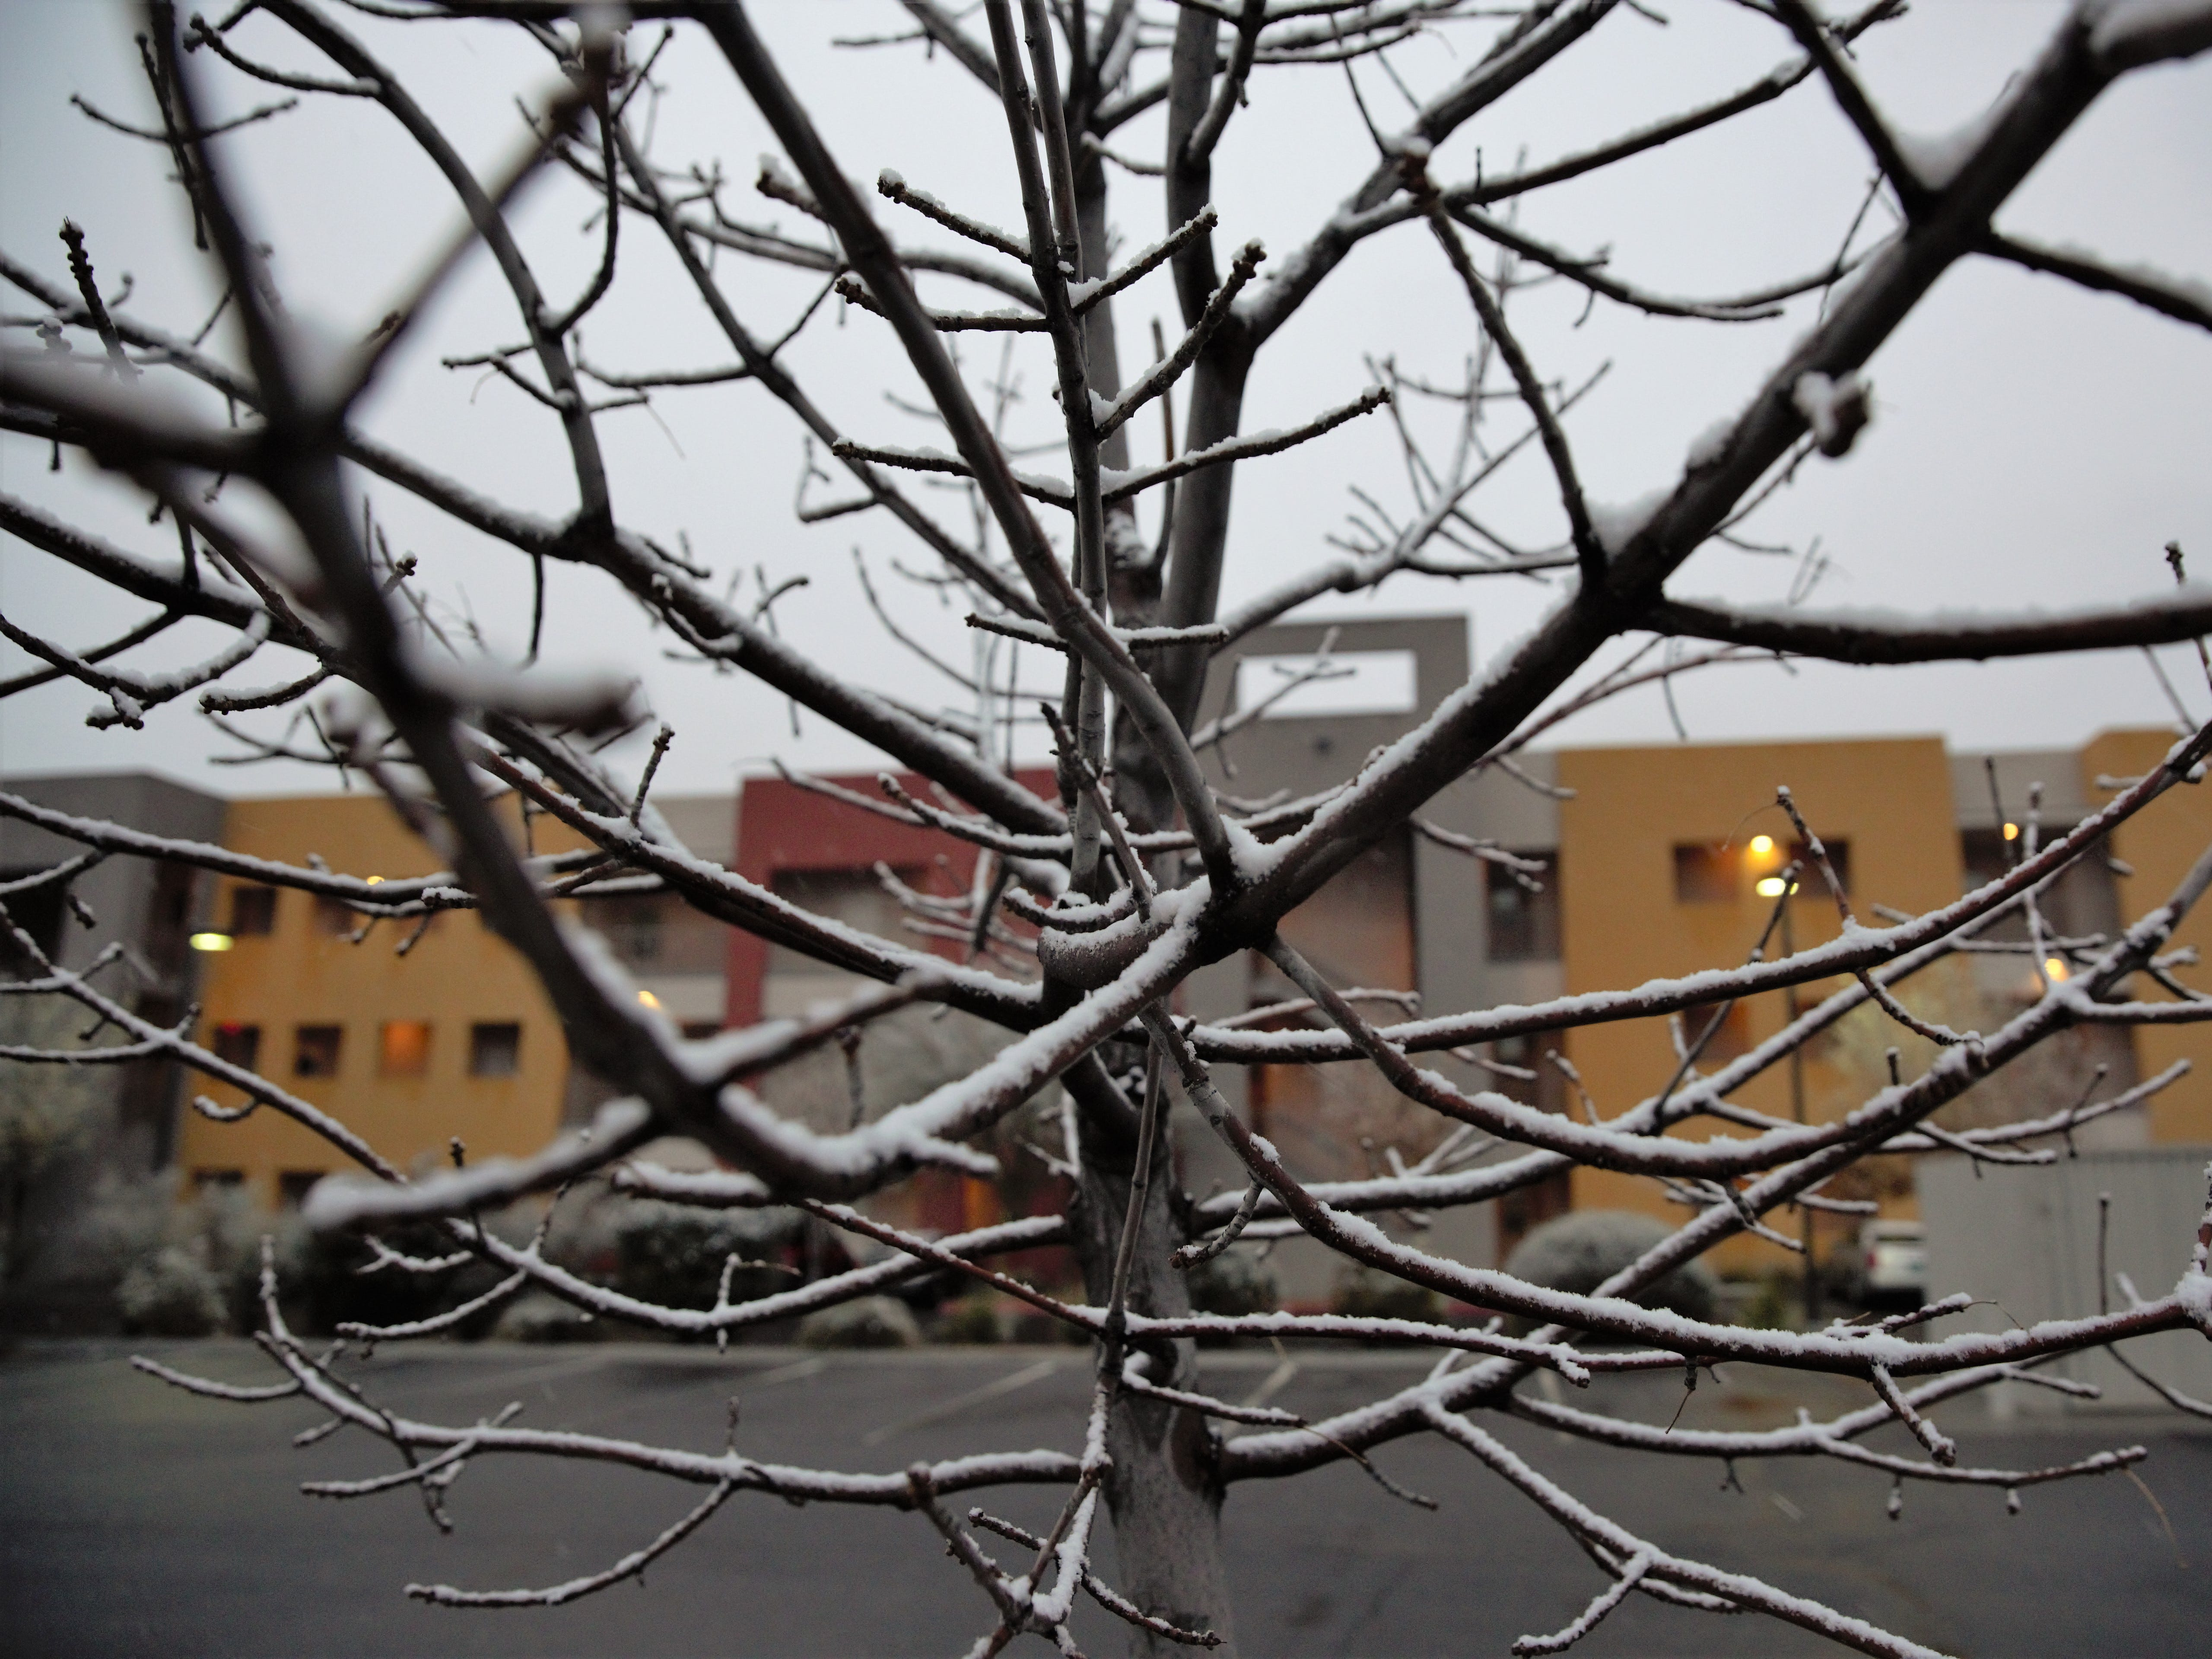 Snow accumulates on branches at the Las Cruces Sun-News, 256 W. Las Cruces Ave., just before sunset on Wednesday, Jan. 2, 2019.